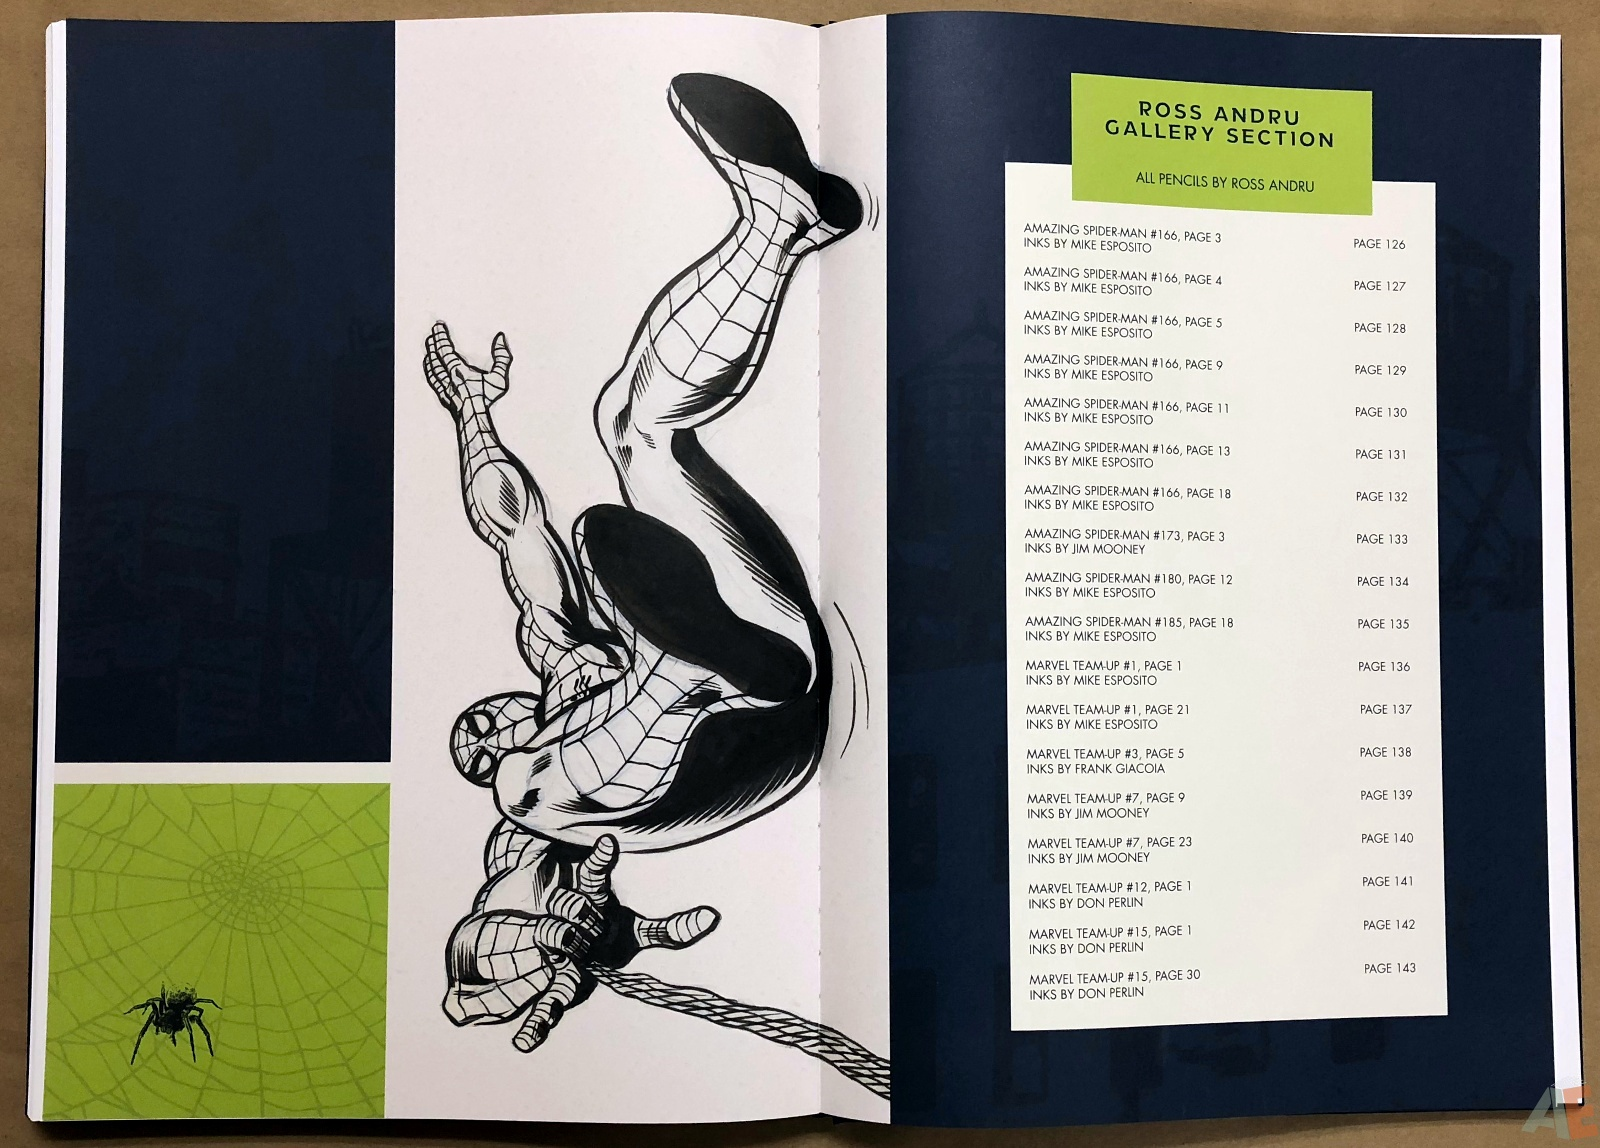 Ross Andru's The Amazing Spider-Man Artist's Edition 38